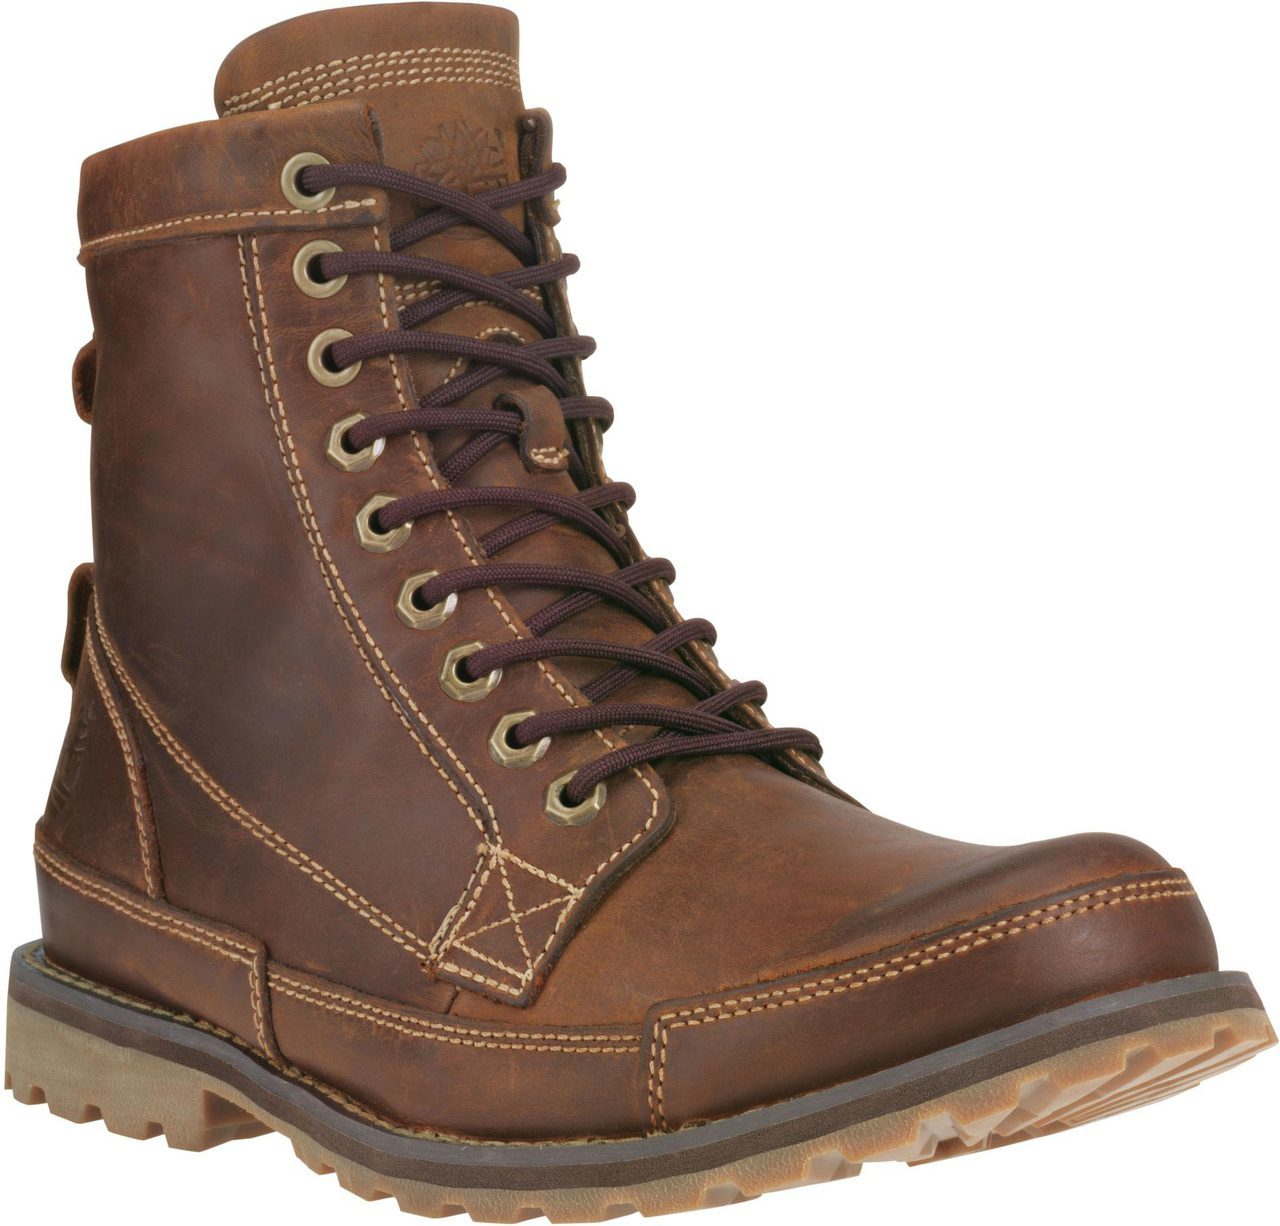 The 3 Must-Have Timberlands - Englin's Fine Footwear Timberland Boots